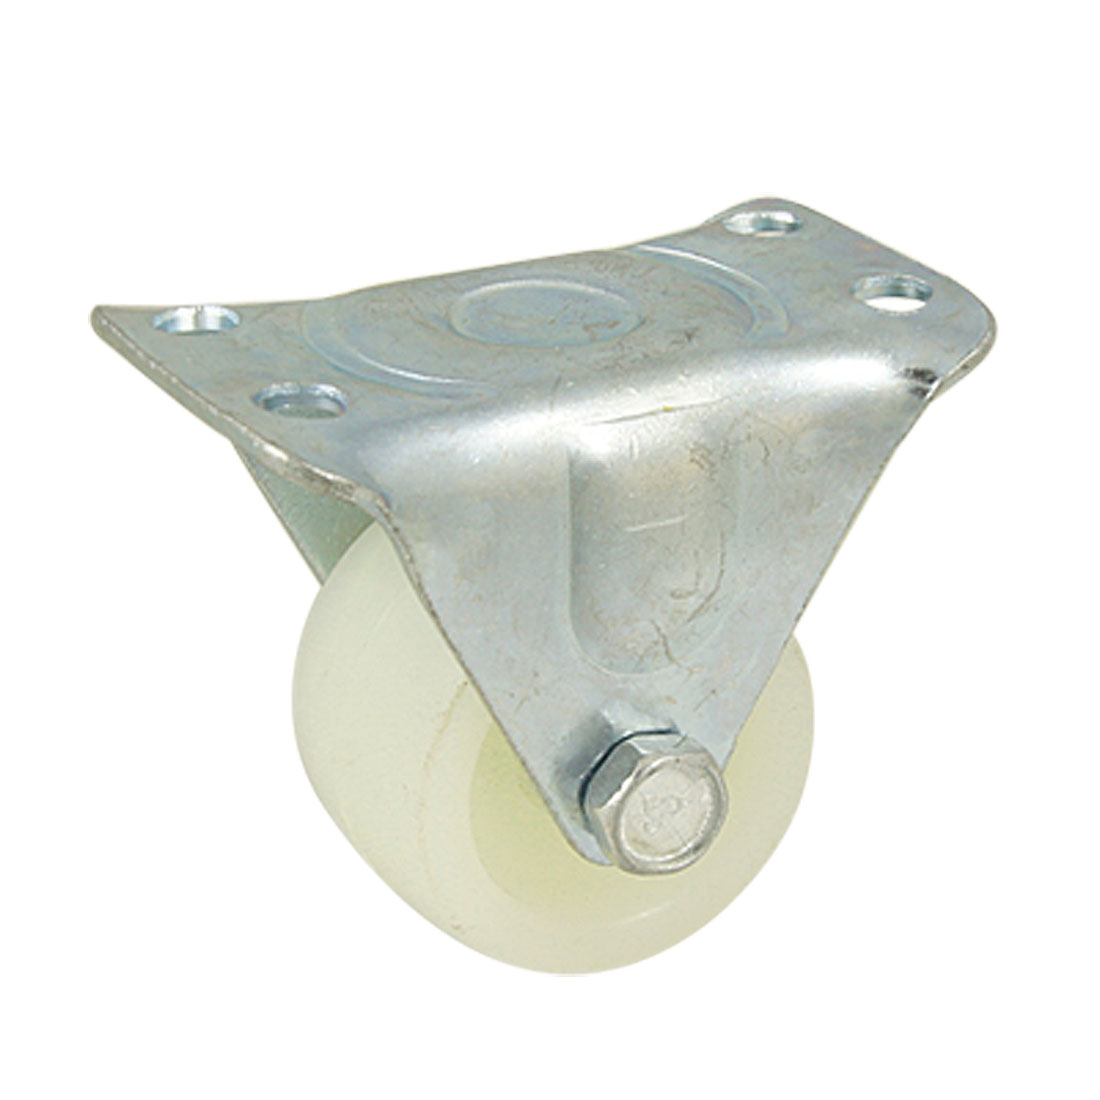 "1.5"" Dia Fixed Type Flat Plate Industrial Caster Wheel"